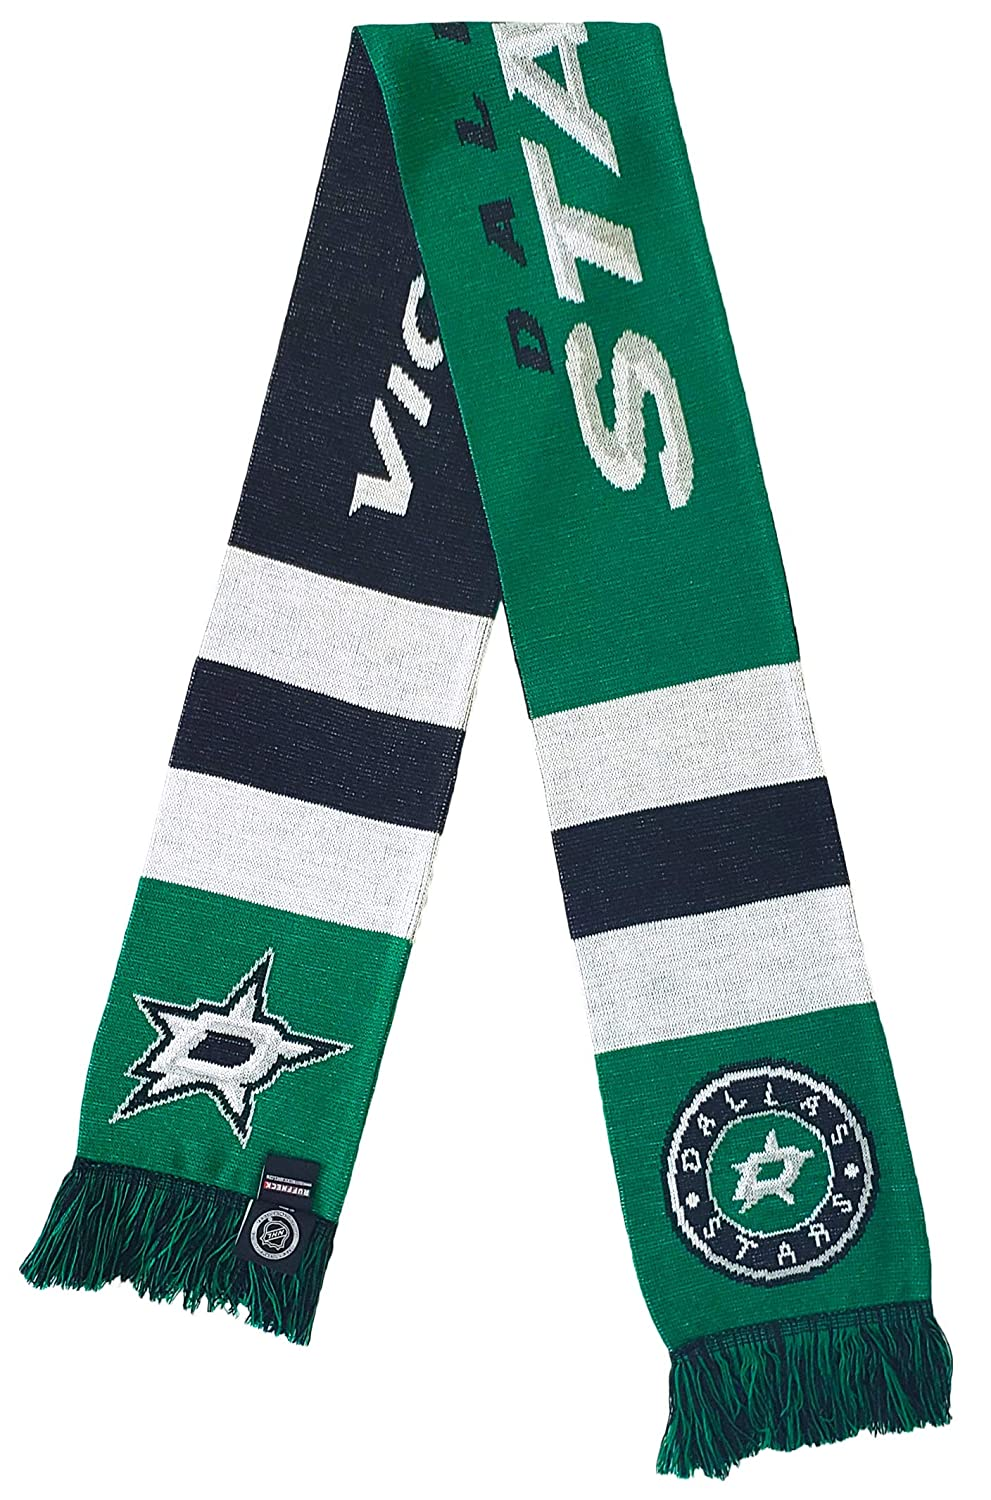 RUFFNECK NHL Unisex Home Jersey Scarf